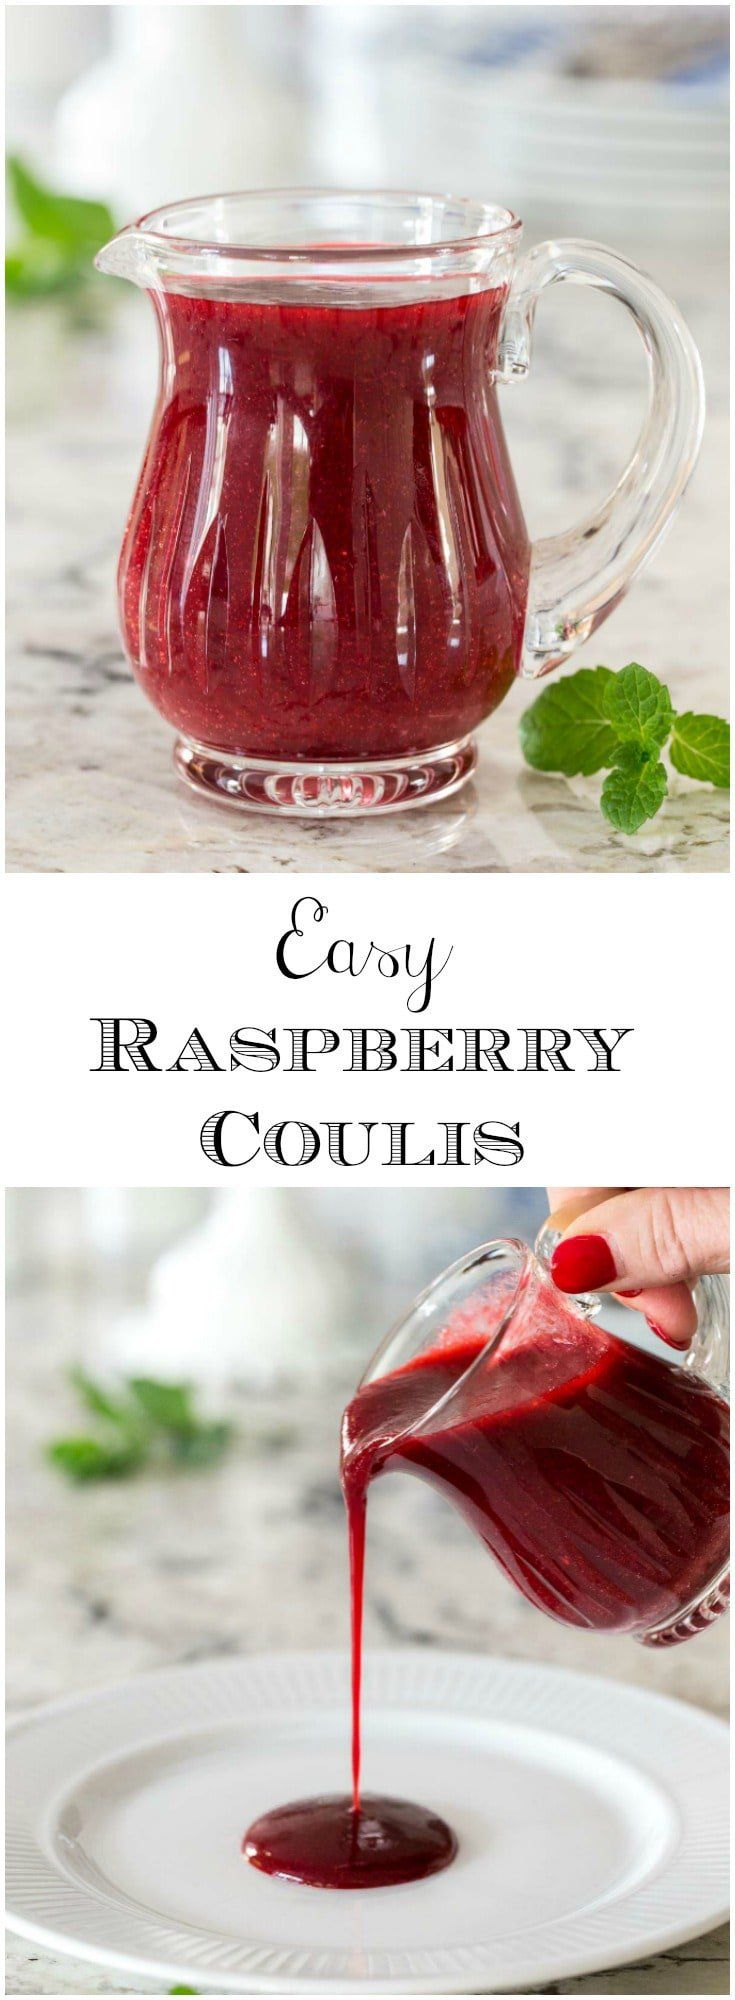 Just a fancy name for a delicious, super versatile raspberry sauce, this Easy Raspberry Coulis pairs fabulously with chocolate and a zillion other desserts! via @cafesucrefarine